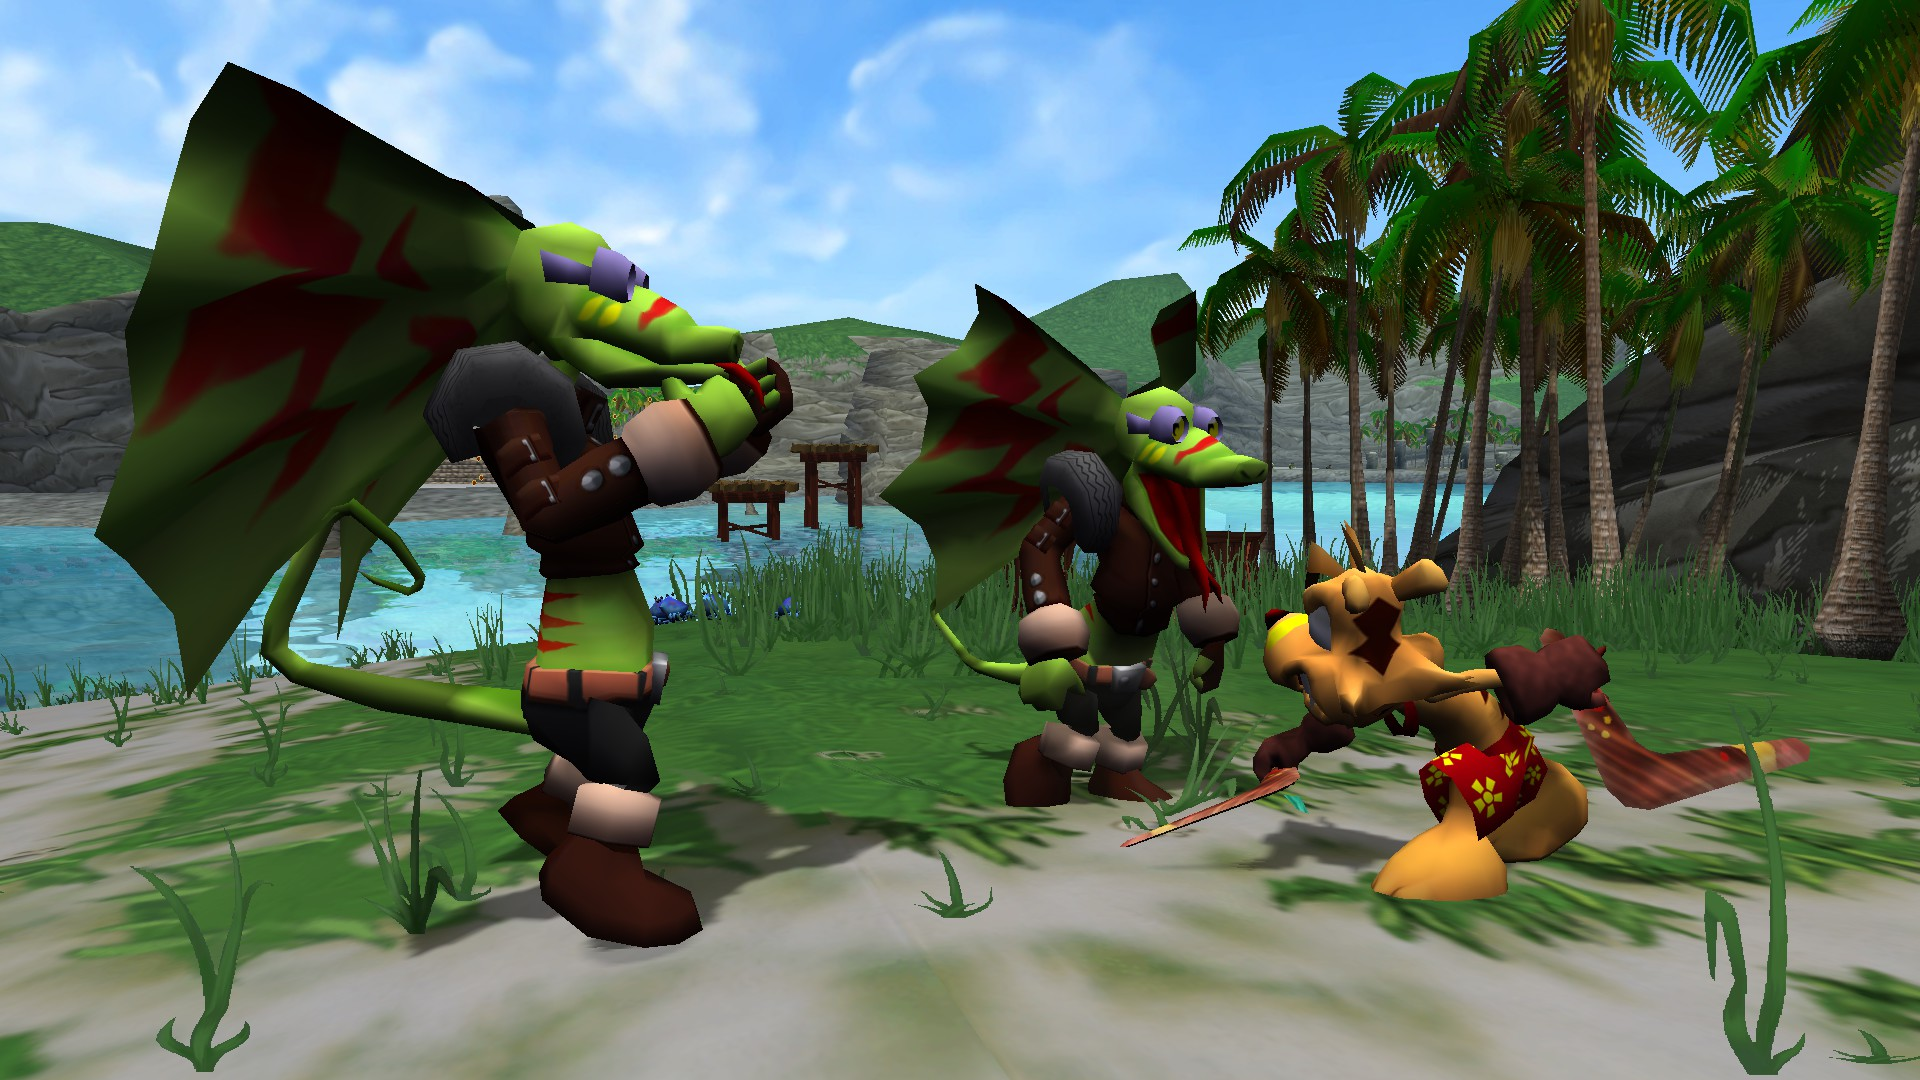 TY the Tasmanian Tiger Screenshot 2